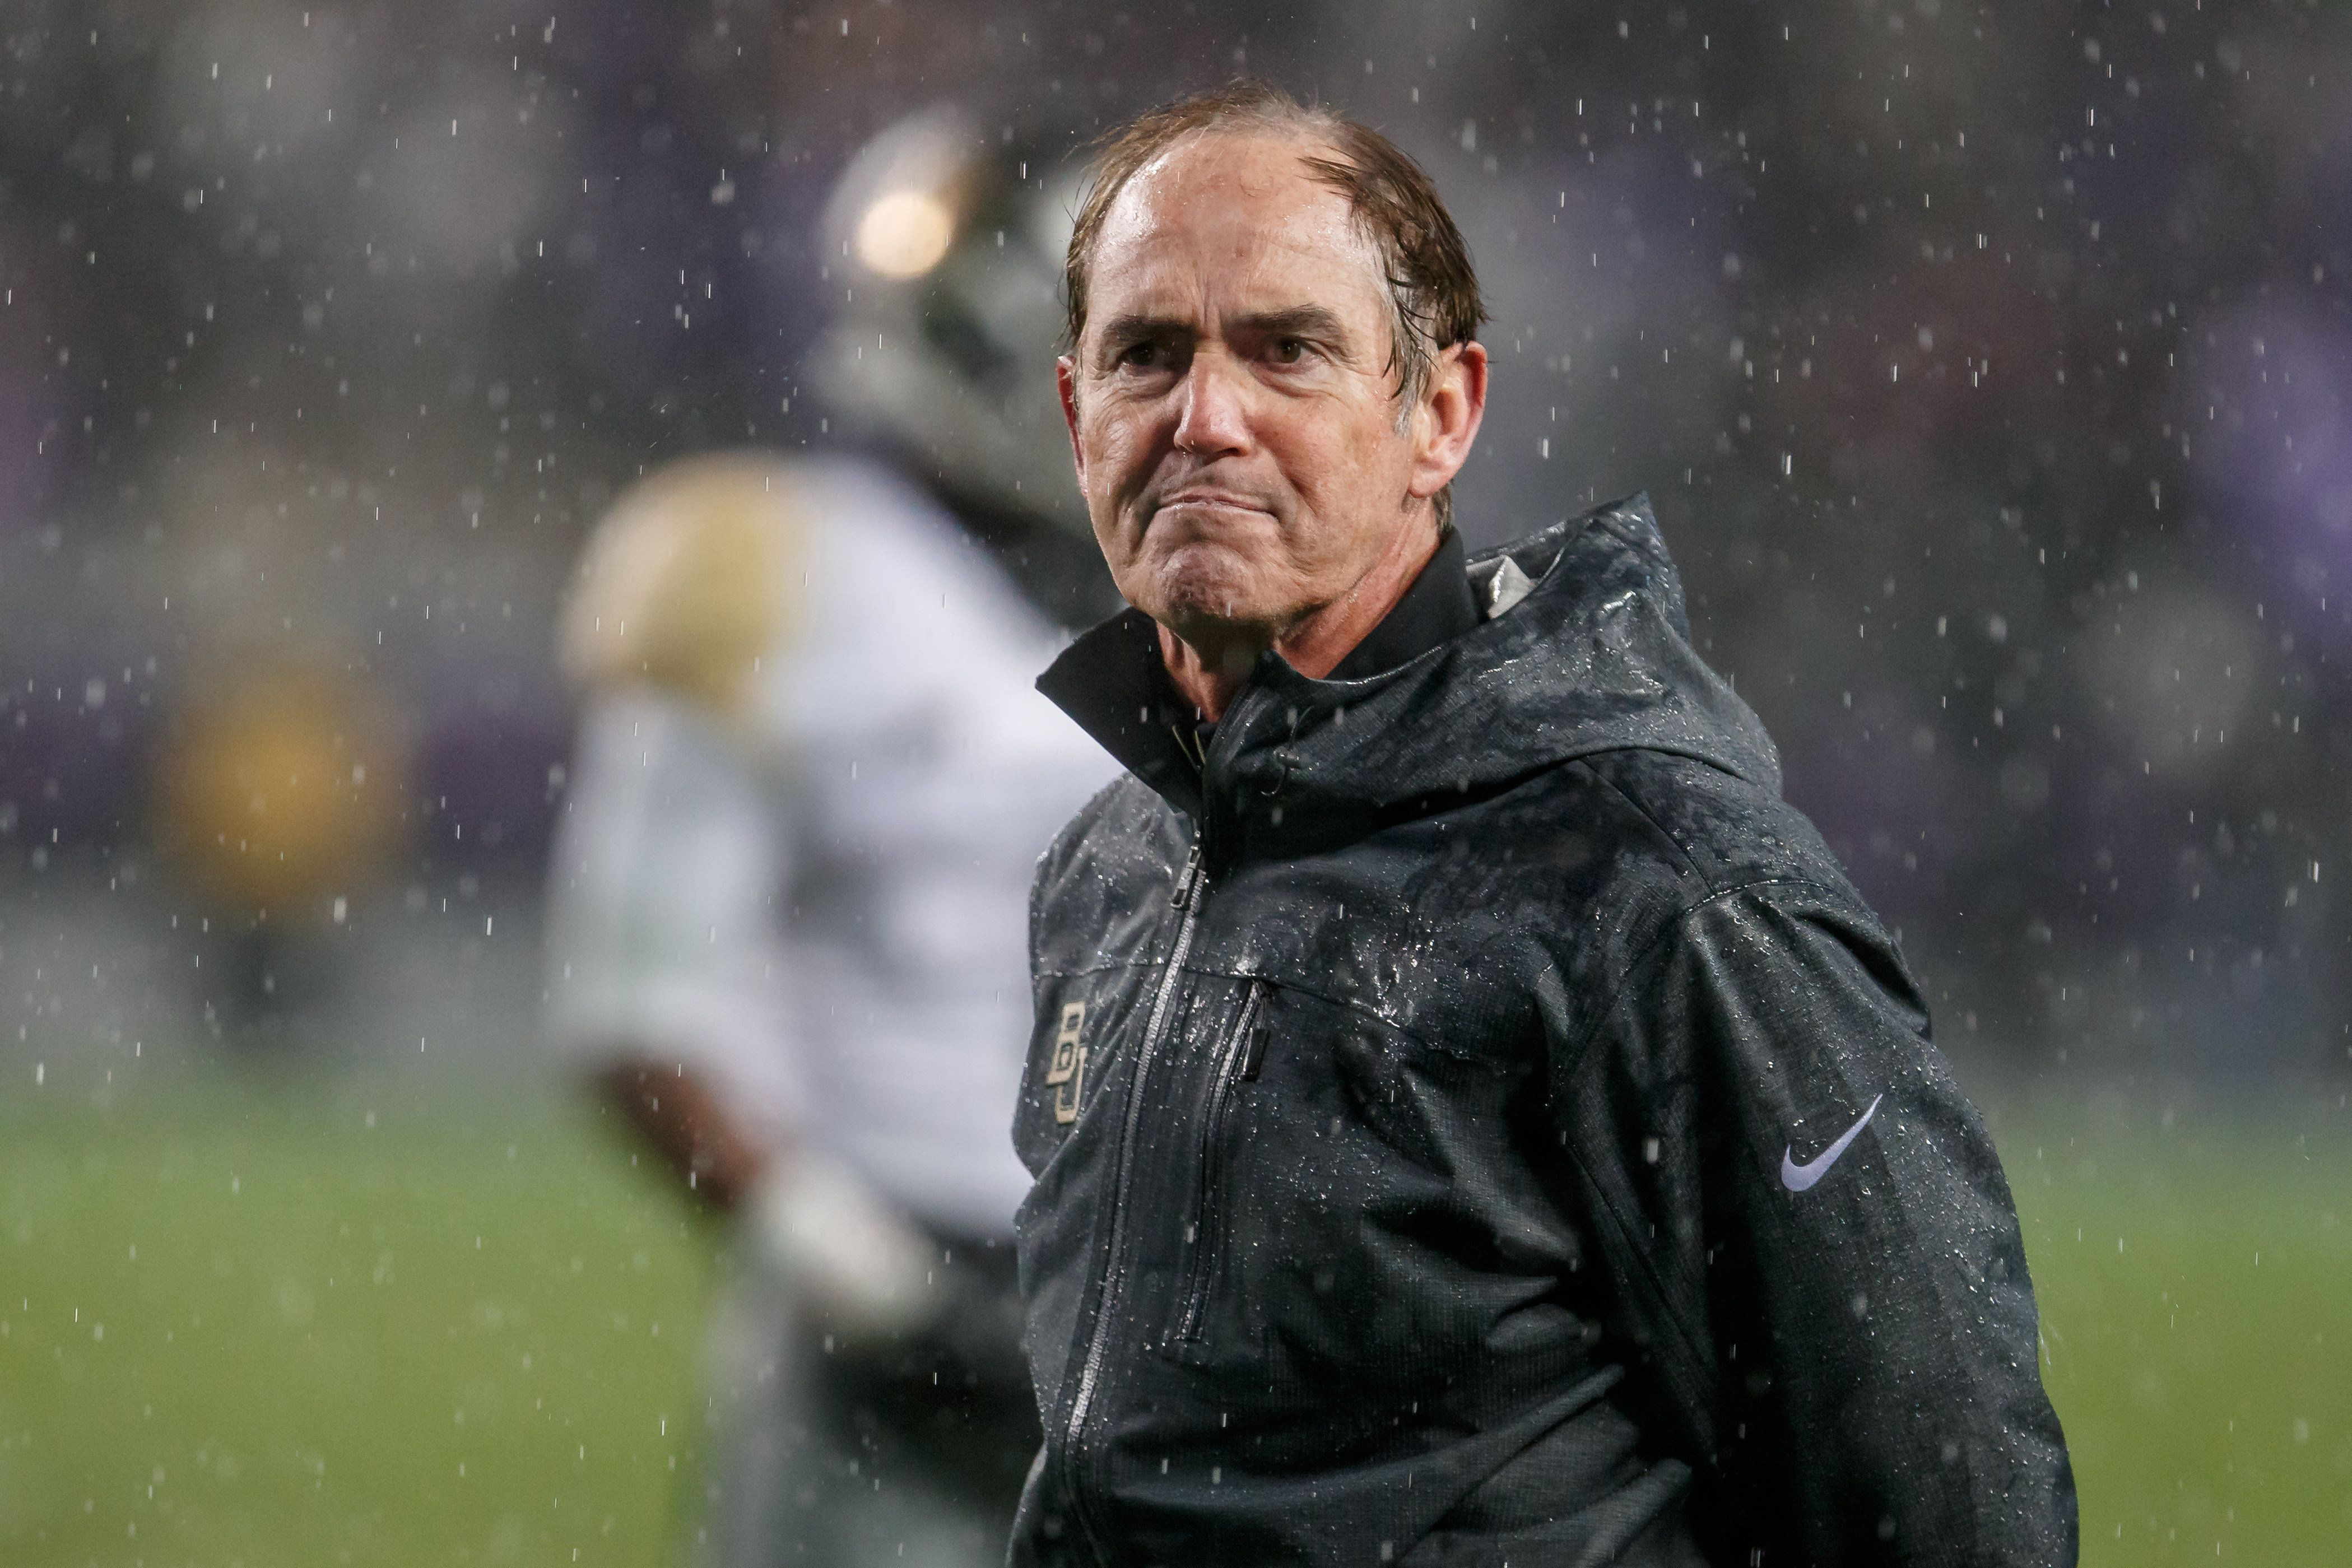 27 November 2015: Baylor Bears head coach Art Briles stares down a referee during the Big 12 college football game between the TCU Horned Frogs and the Baylor Bears at Amon G. Carter Stadium in Fort Worth, Texas. TCU won the game 28-21 in overtime. (Photo by Matthew Visinsky/Icon Sportswire) (Photo by Matthew Visinsky/Icon Sportswire/Corbis via Getty Images)